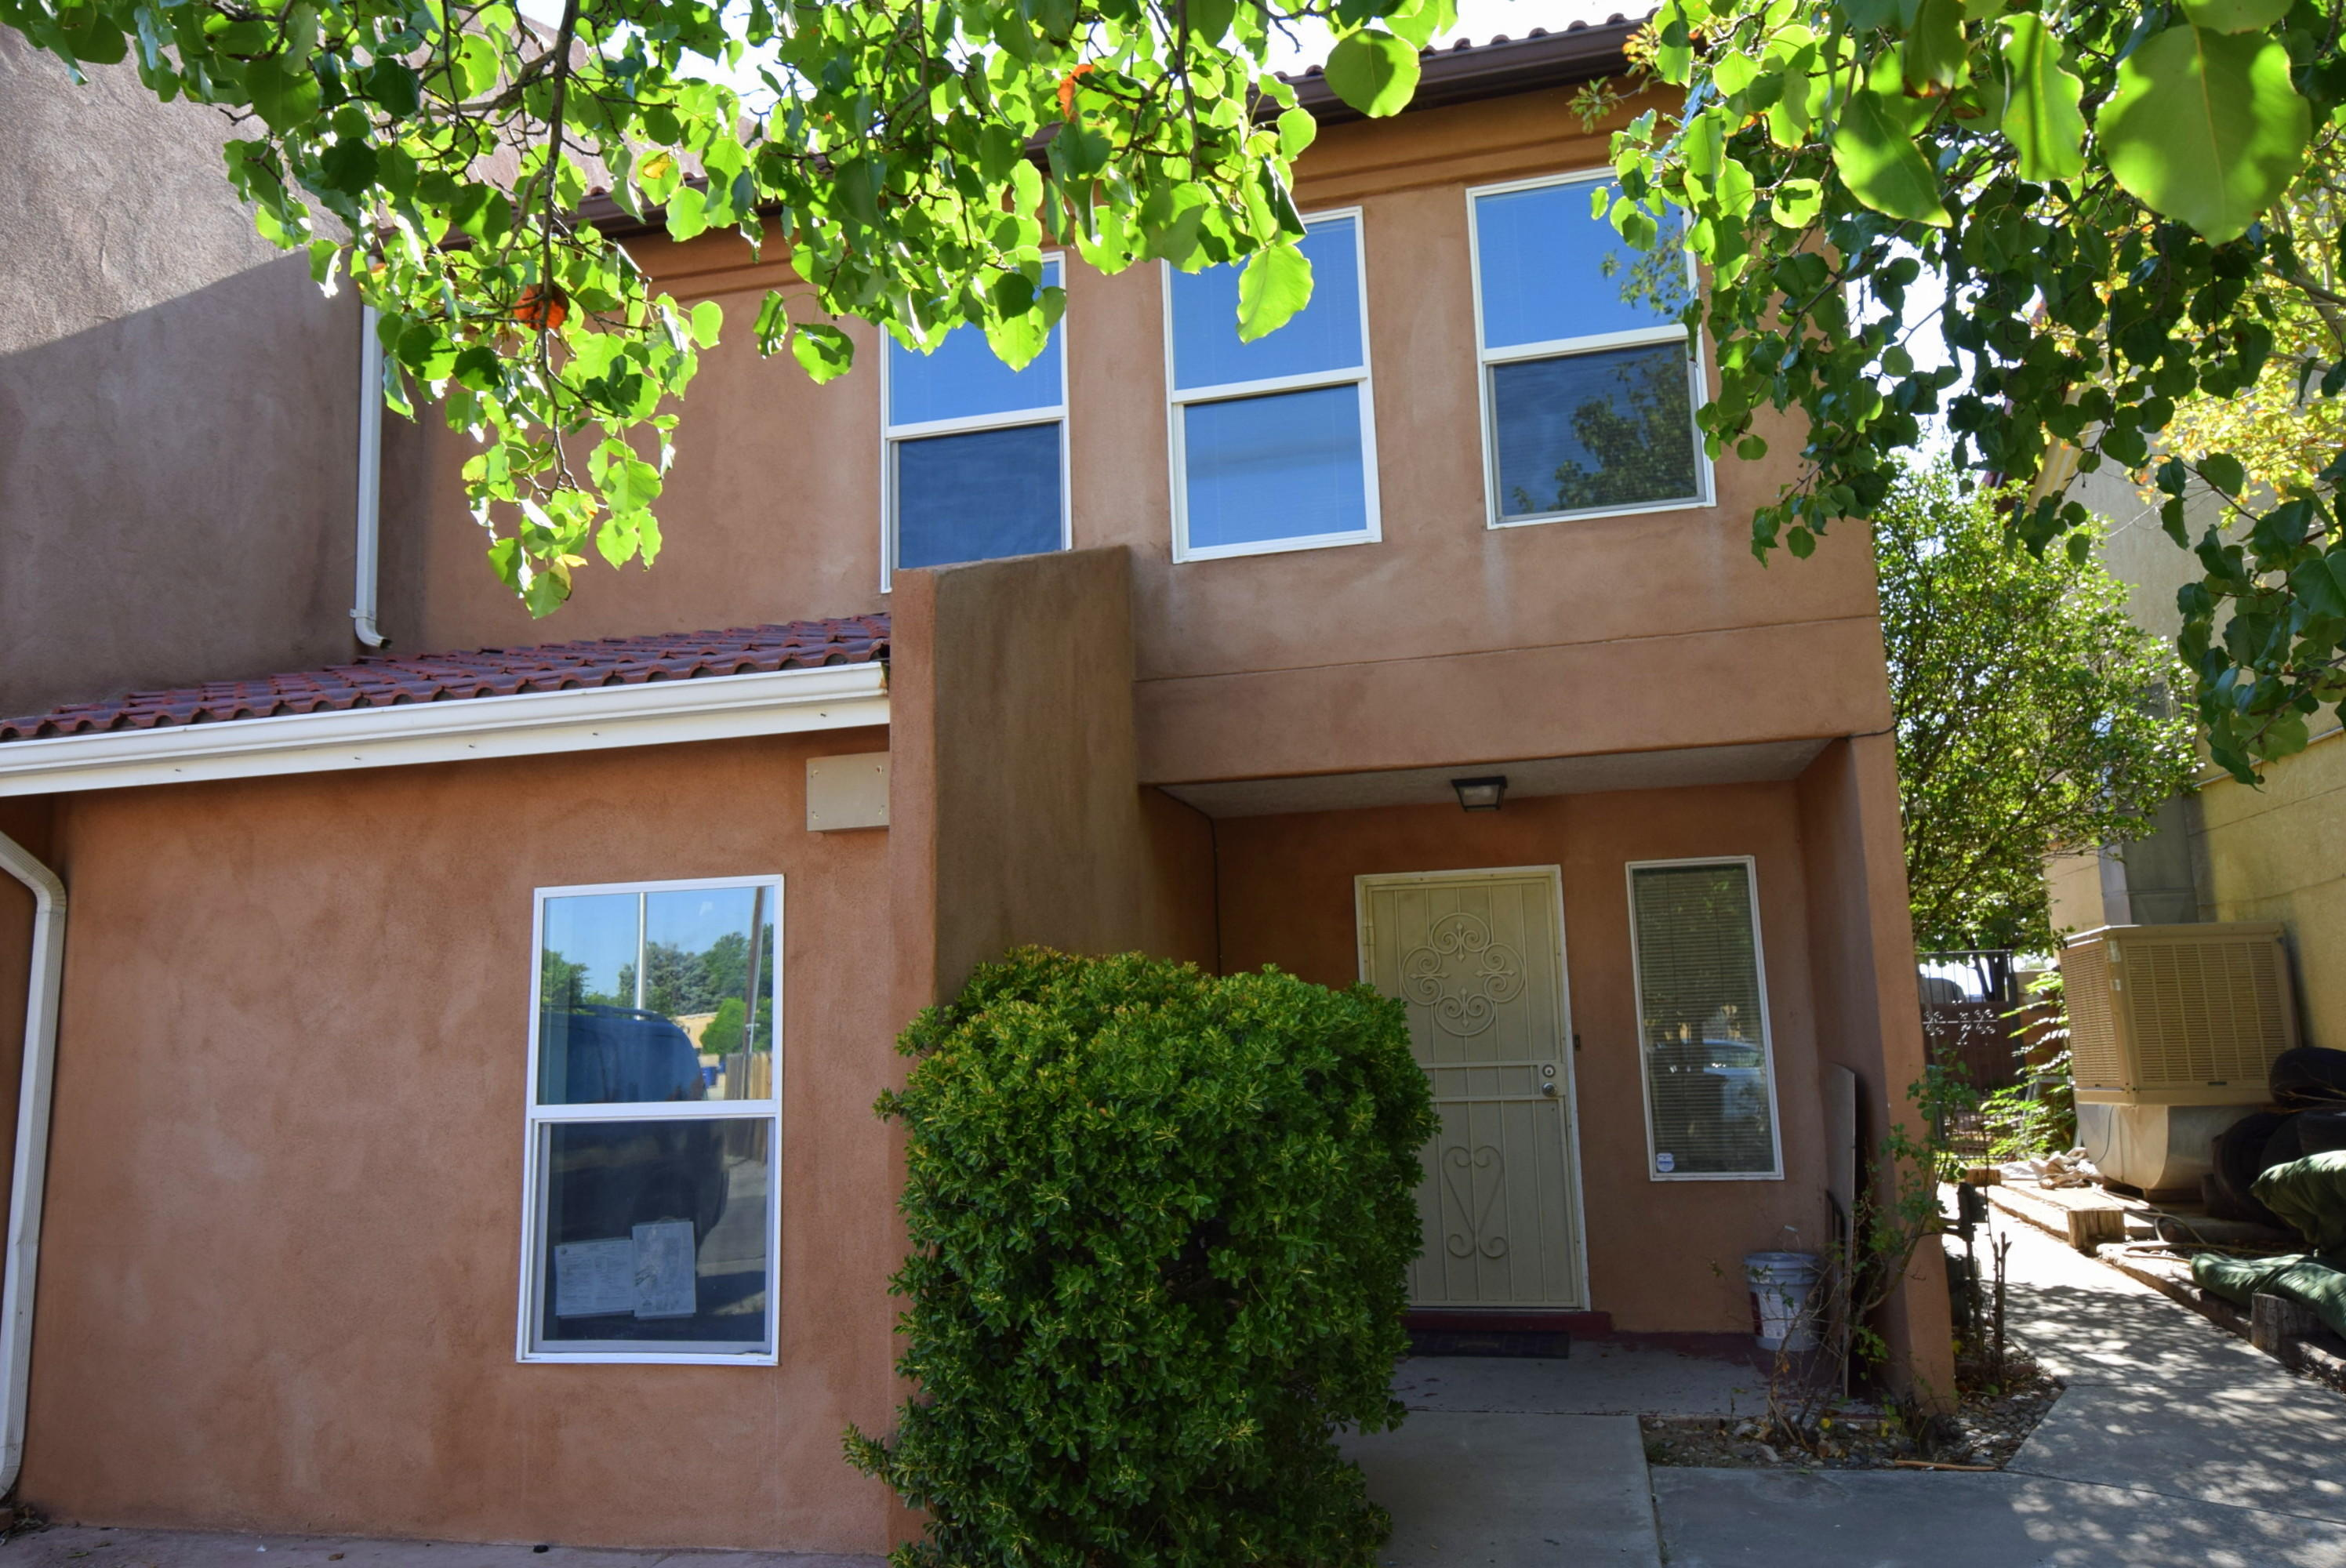 Great North Valley townhouse in a  great location at a great price with many upgrades.  Full remodeled home with granite counter tops, fresh new paint, 18 inch tile, wood laminate throughout the home, a classy wood fireplace.  4th bedroom added downstairs.  Within minutes from freeway access, shopping centers, restaurants, gyms and very close to Ladera Golf Course.  A must see, won't last long.  Come and make this home yours!